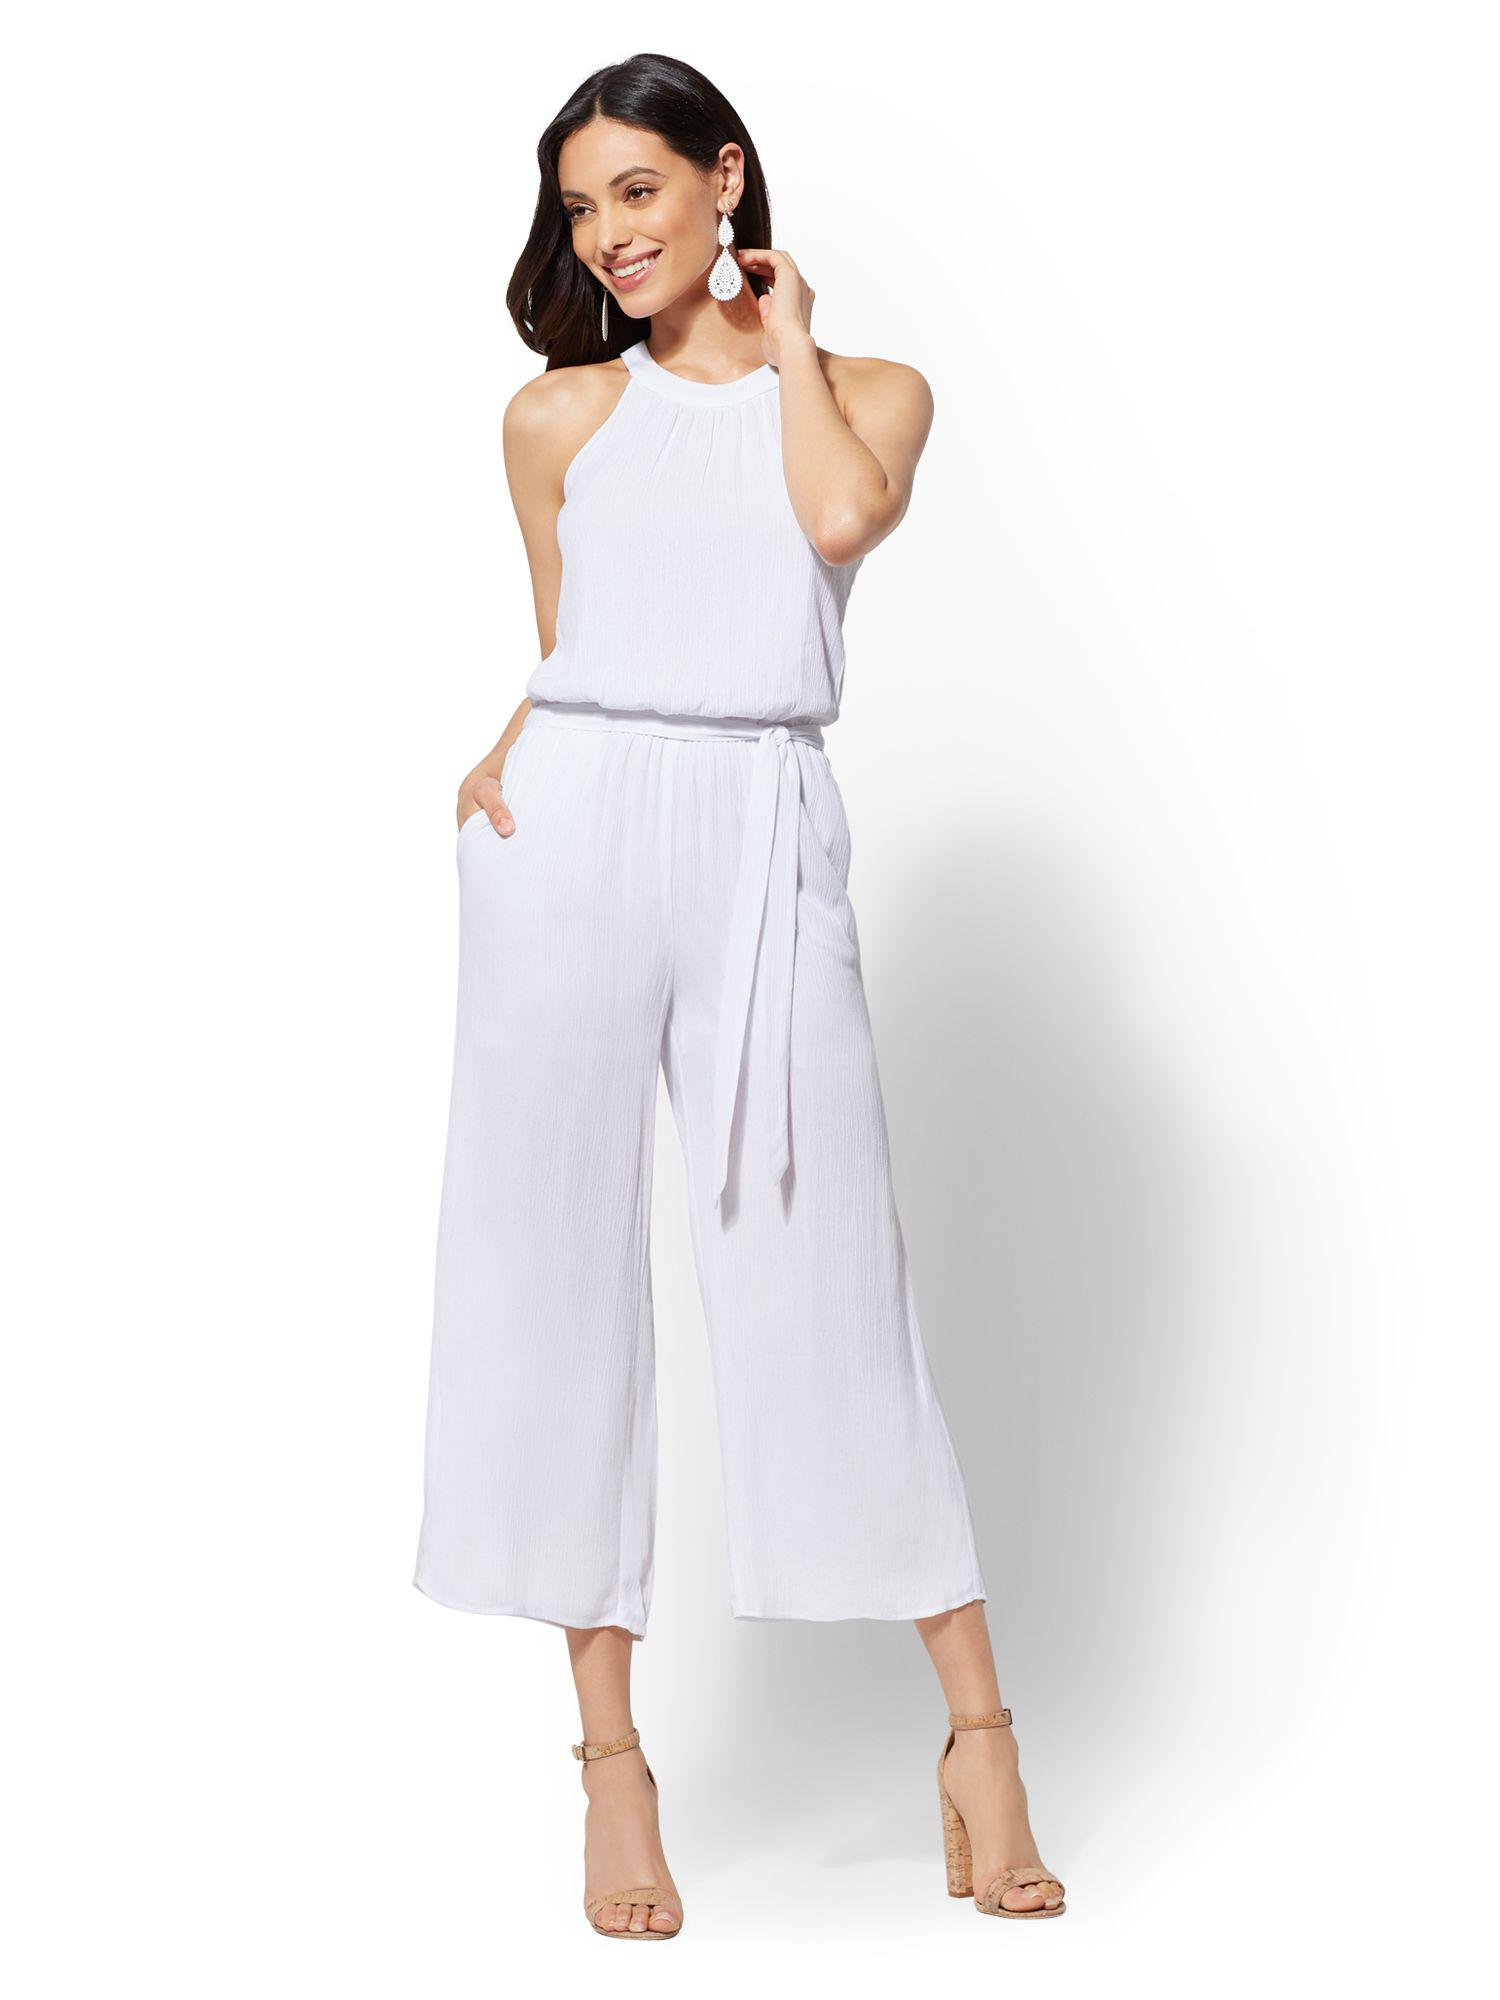 Lyst New York Company Tall White Halter Jumpsuit In White